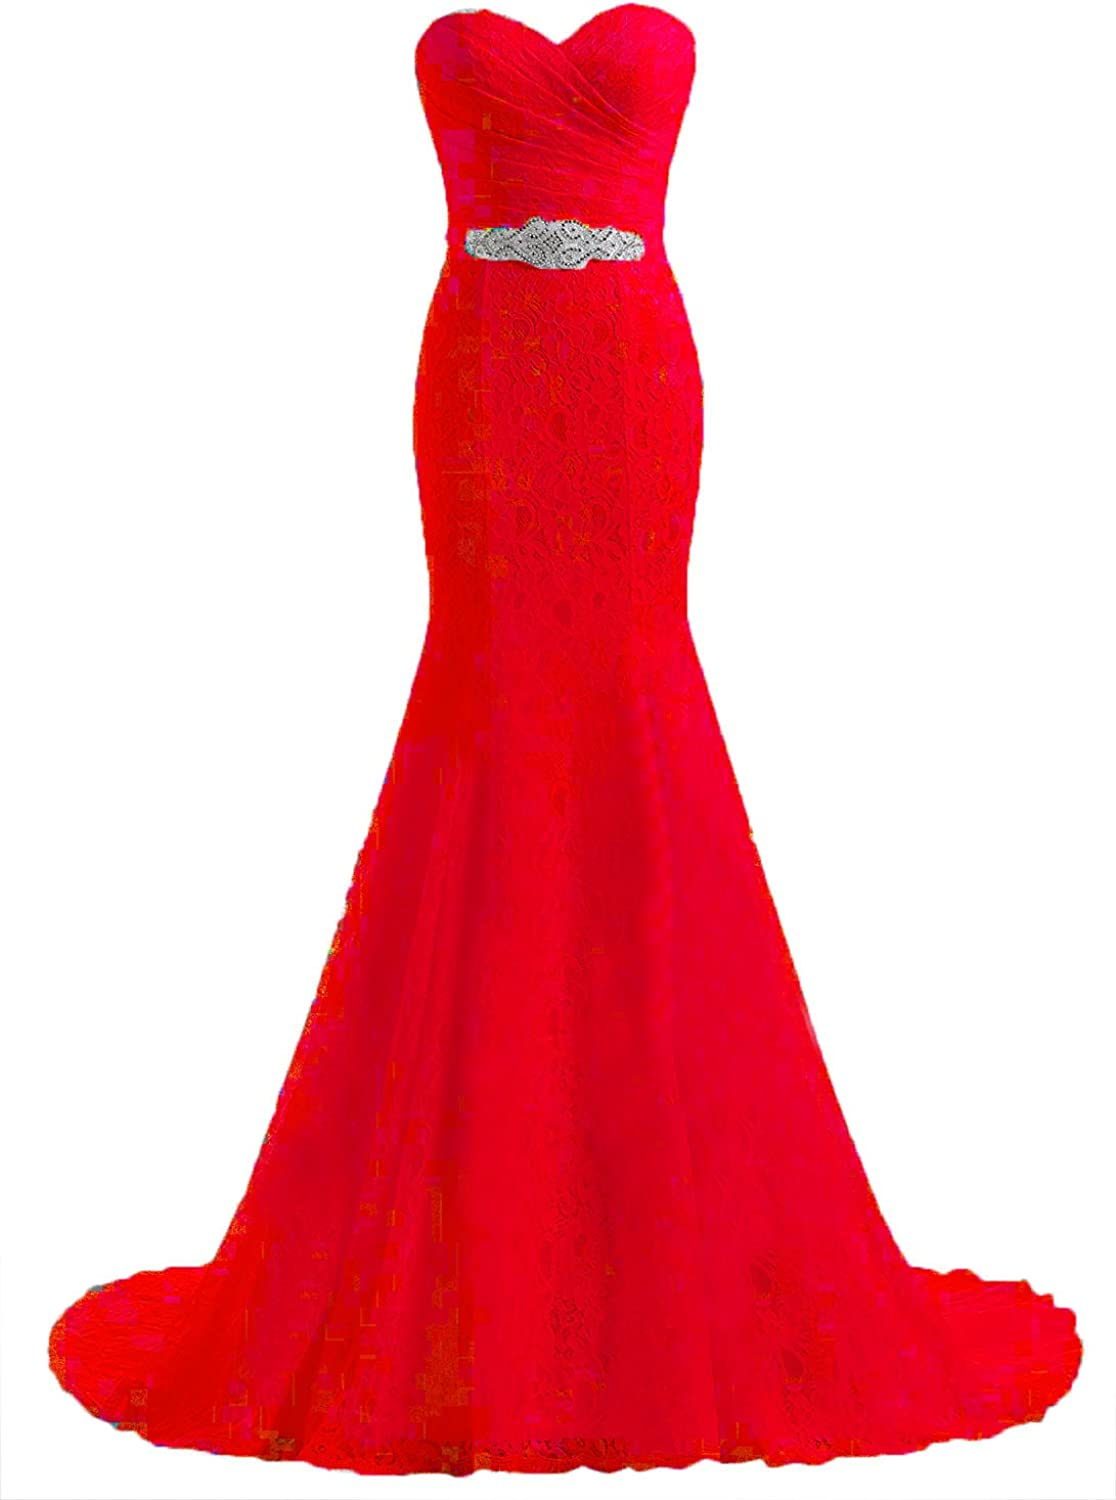 Future Girl Women's Beaded Pleat Lace Wedding Dress Mermaid Bridal Gown with Sash